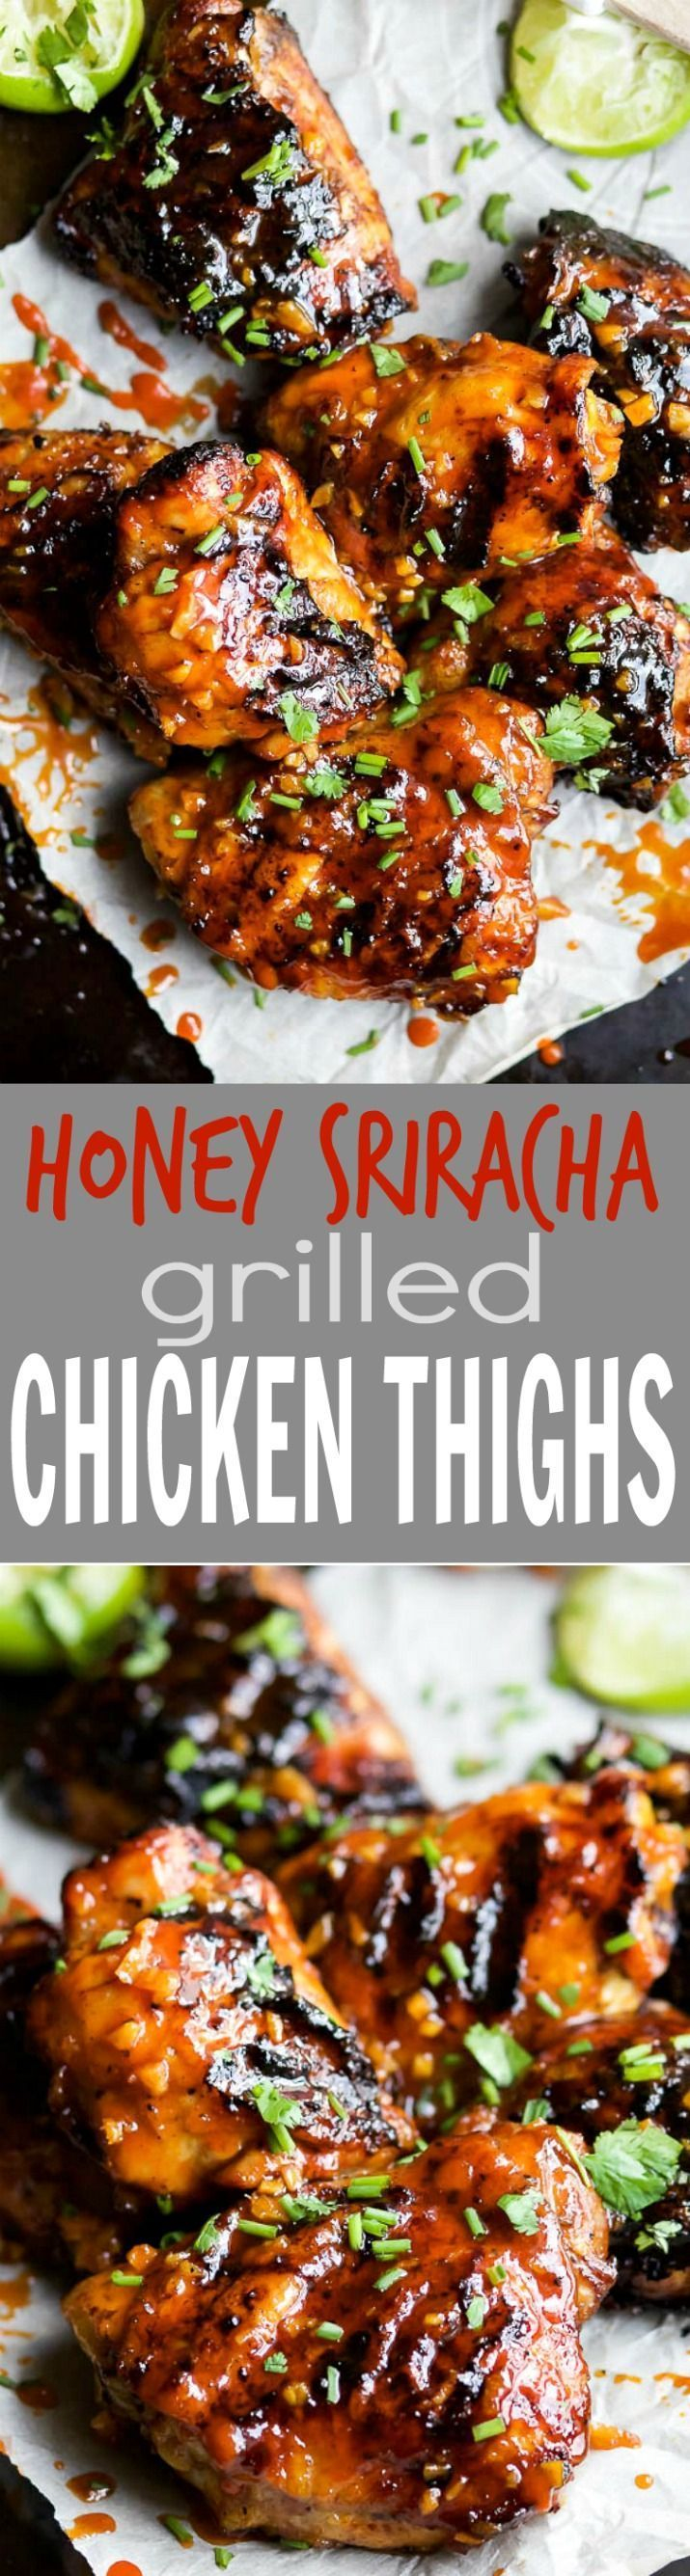 Sweet & Spicy HONEY SRIRACHA GRILLED CHICKEN THIGHS - juicy smoky Chicken Thighs slathered in an easy Honey Sriracha glaze that will make you swoon! I guarantee these will be a hit! | joyfulhealthyeats... | #ad | gluten free recipes